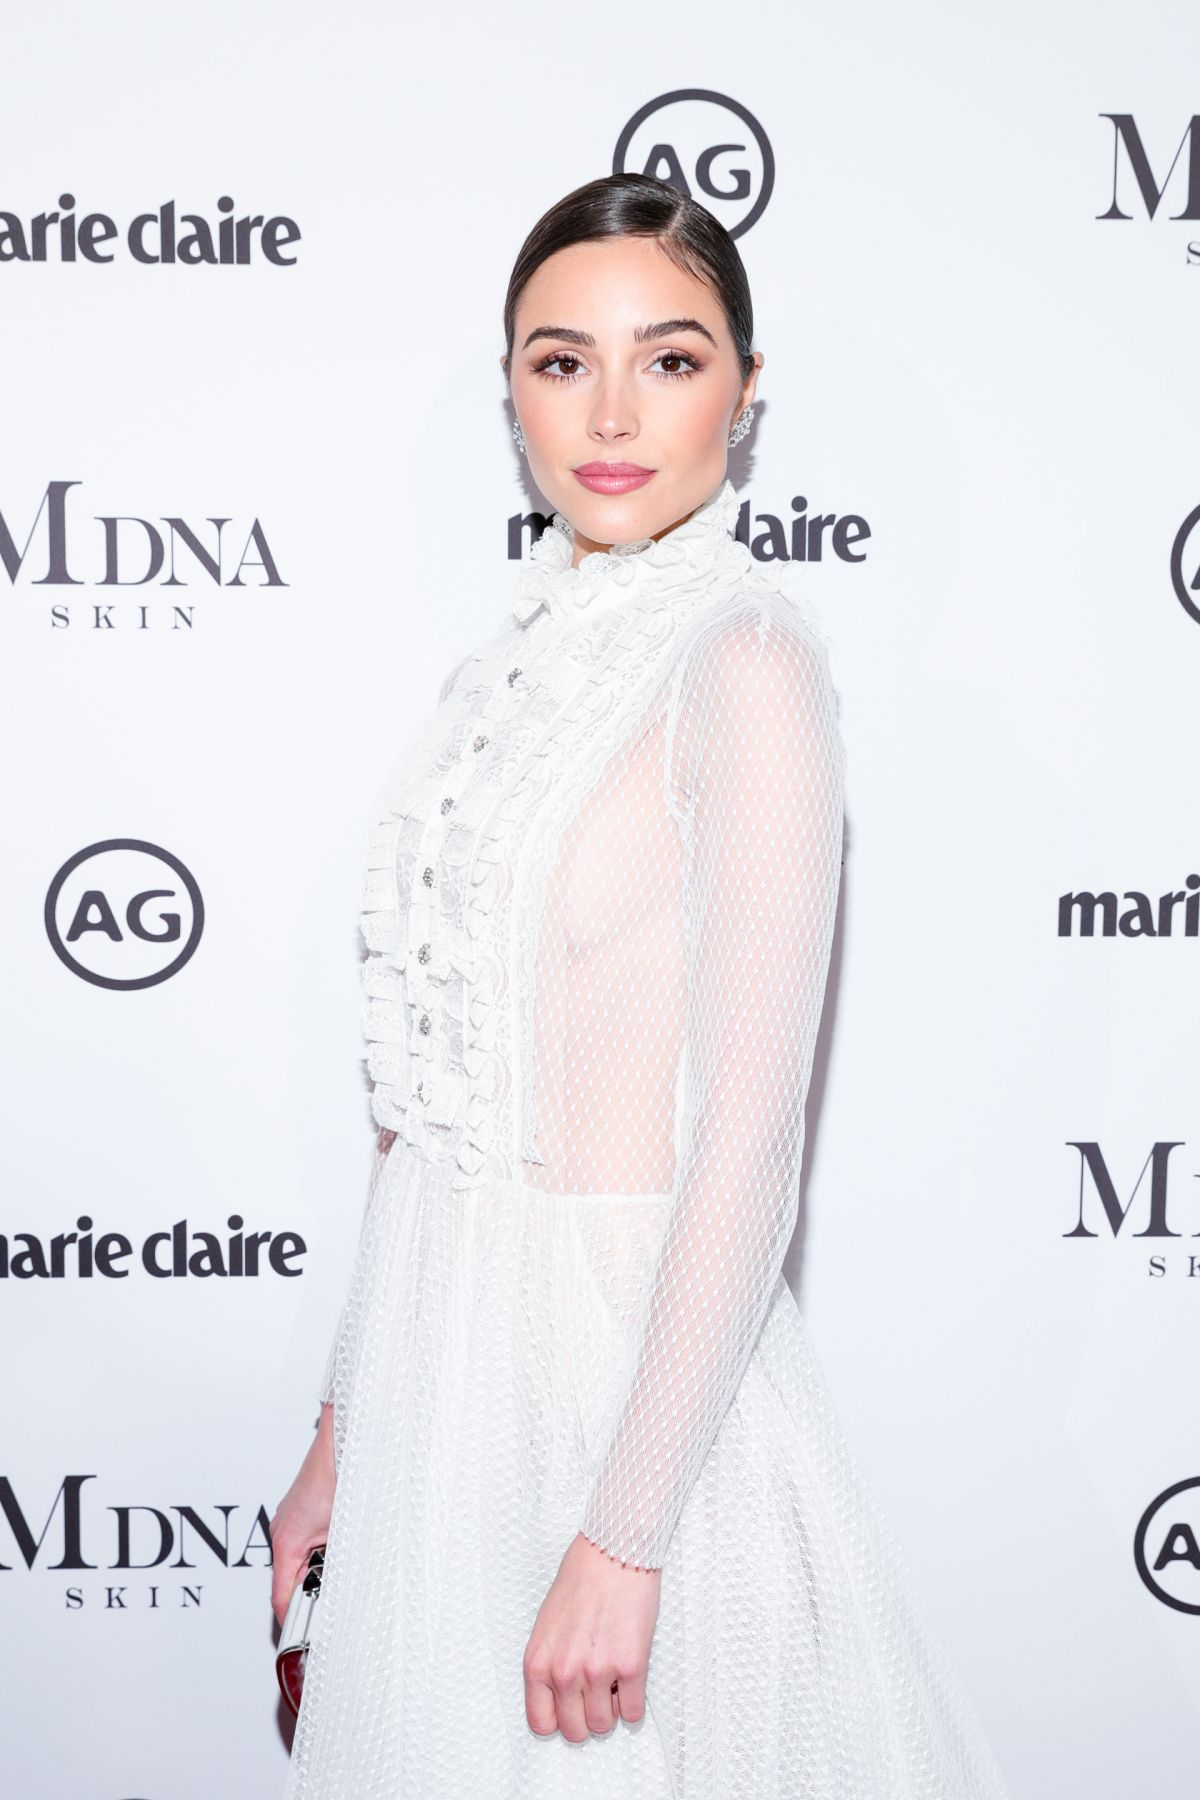 Olivia Culpo At Marie Claire's Image Makers Awards 2018 in West Hollywood - Celebzz - Celebzz